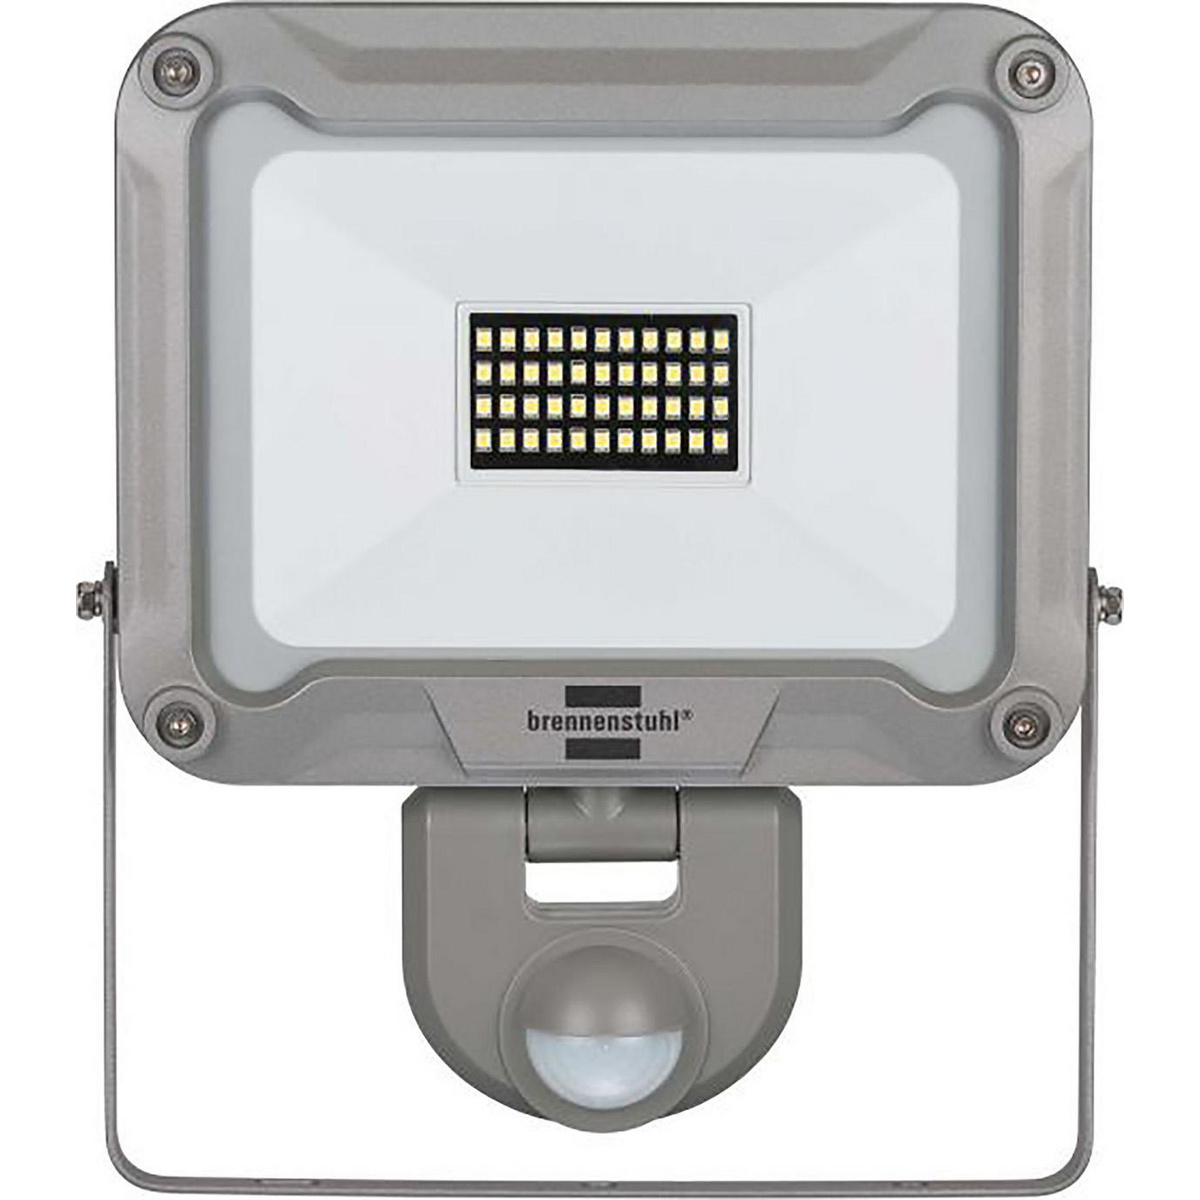 Suitable for indoor and outdoor installation, IP 44. Powerful 50 WLED lamp with chip for wall mounting, with extra wide light distribution for illuminating a large surface. Ideal for hobbyists, workshops and building sites. Automatic lighting of entrances